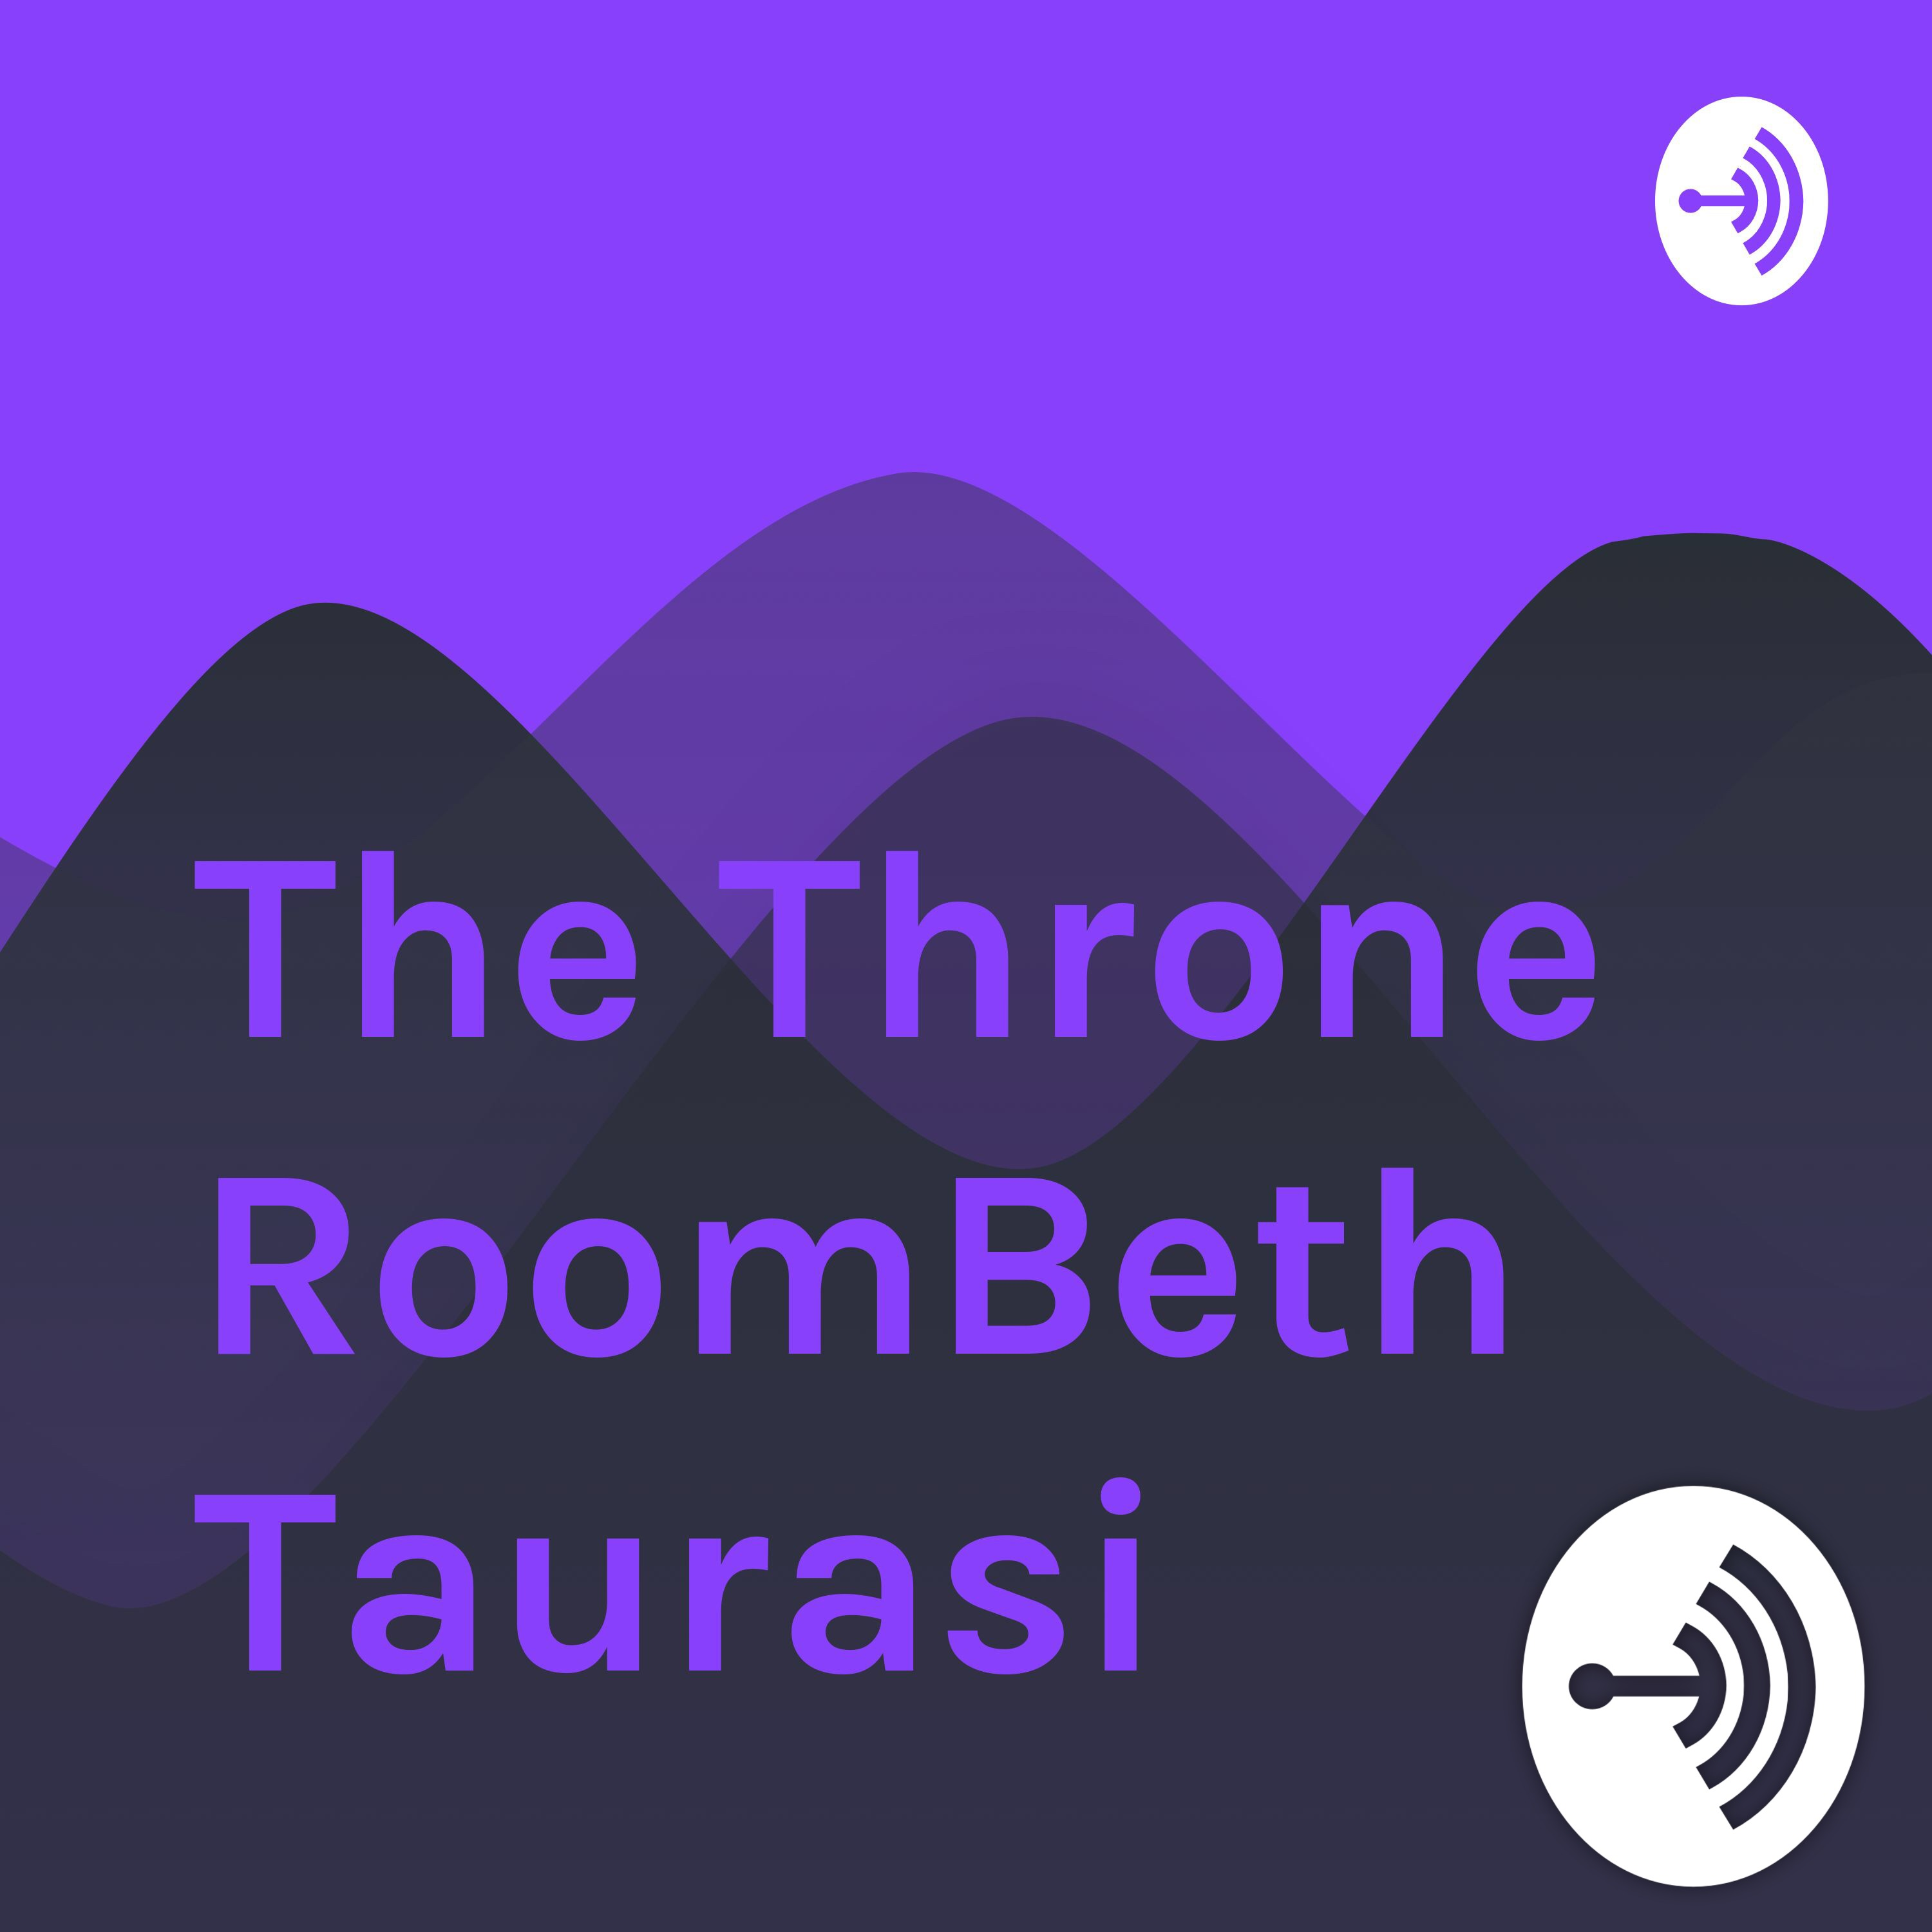 The return of the throne room